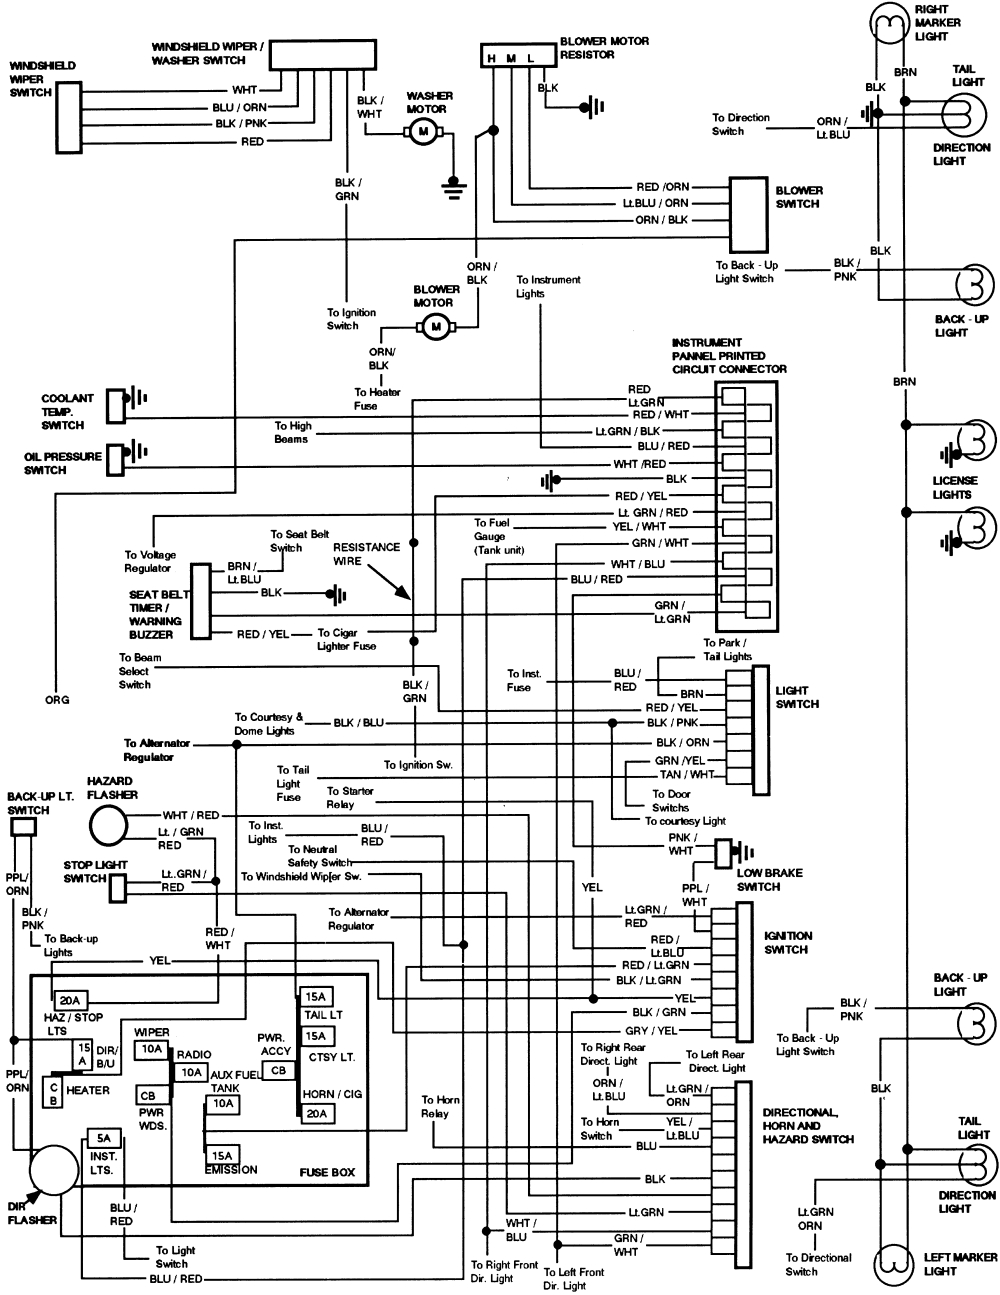 97 ford f 250 5 8 Motor diagram